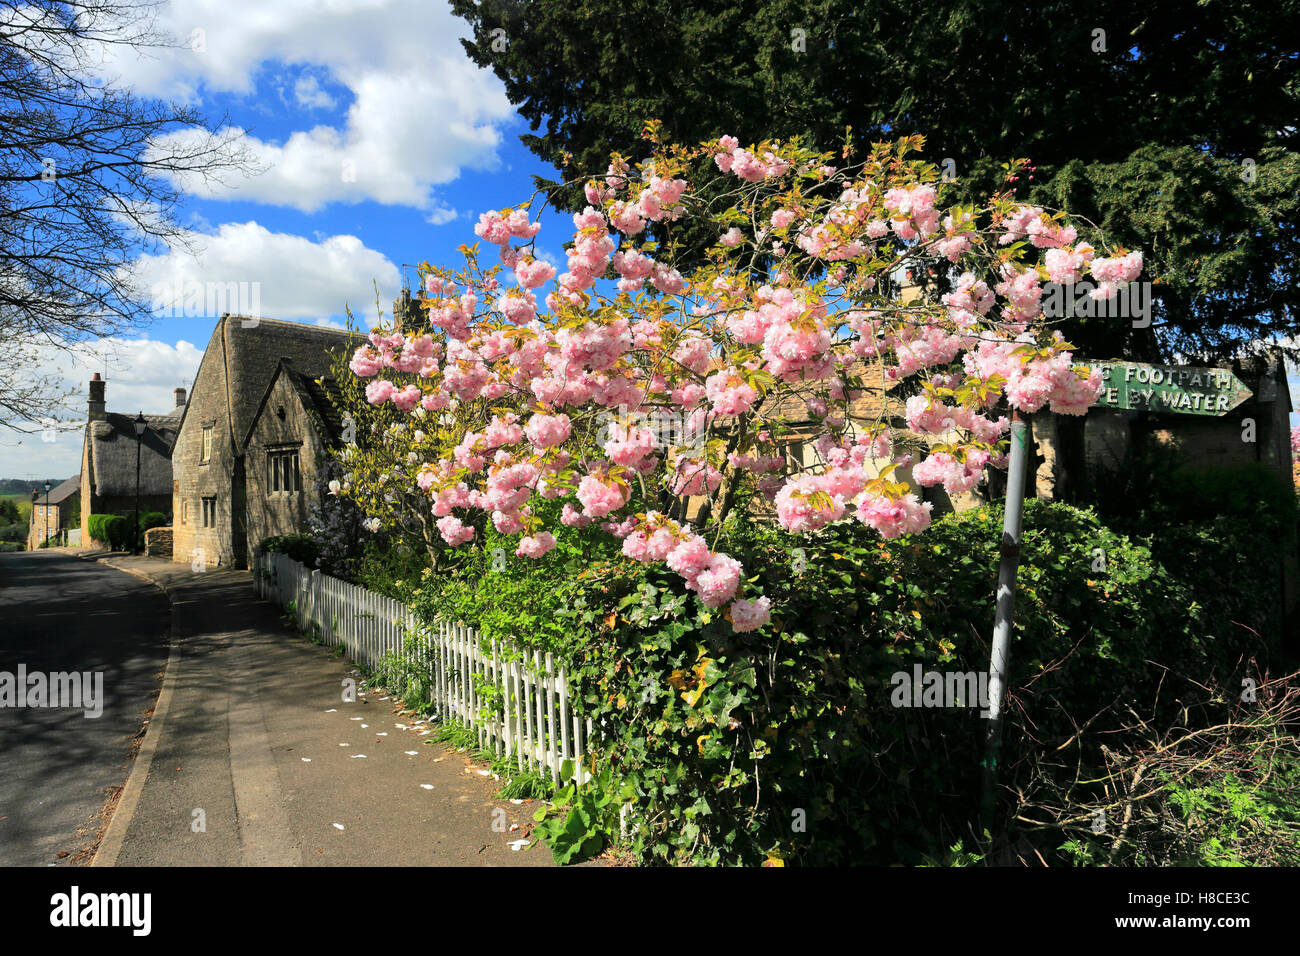 Summer view, Gretton village, Northamptonshire county; England; UK - Stock Image